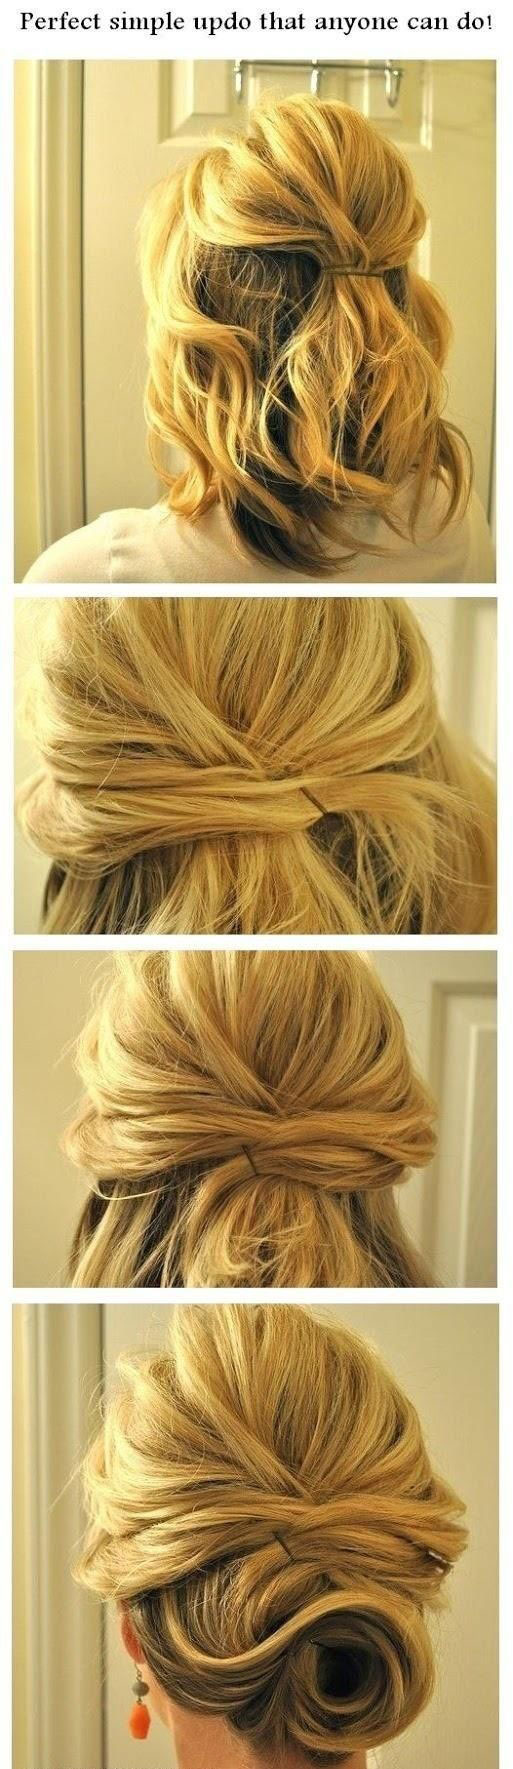 10+ Shoulder Length Hairstyle Tutorials  The Hairstyle Mag